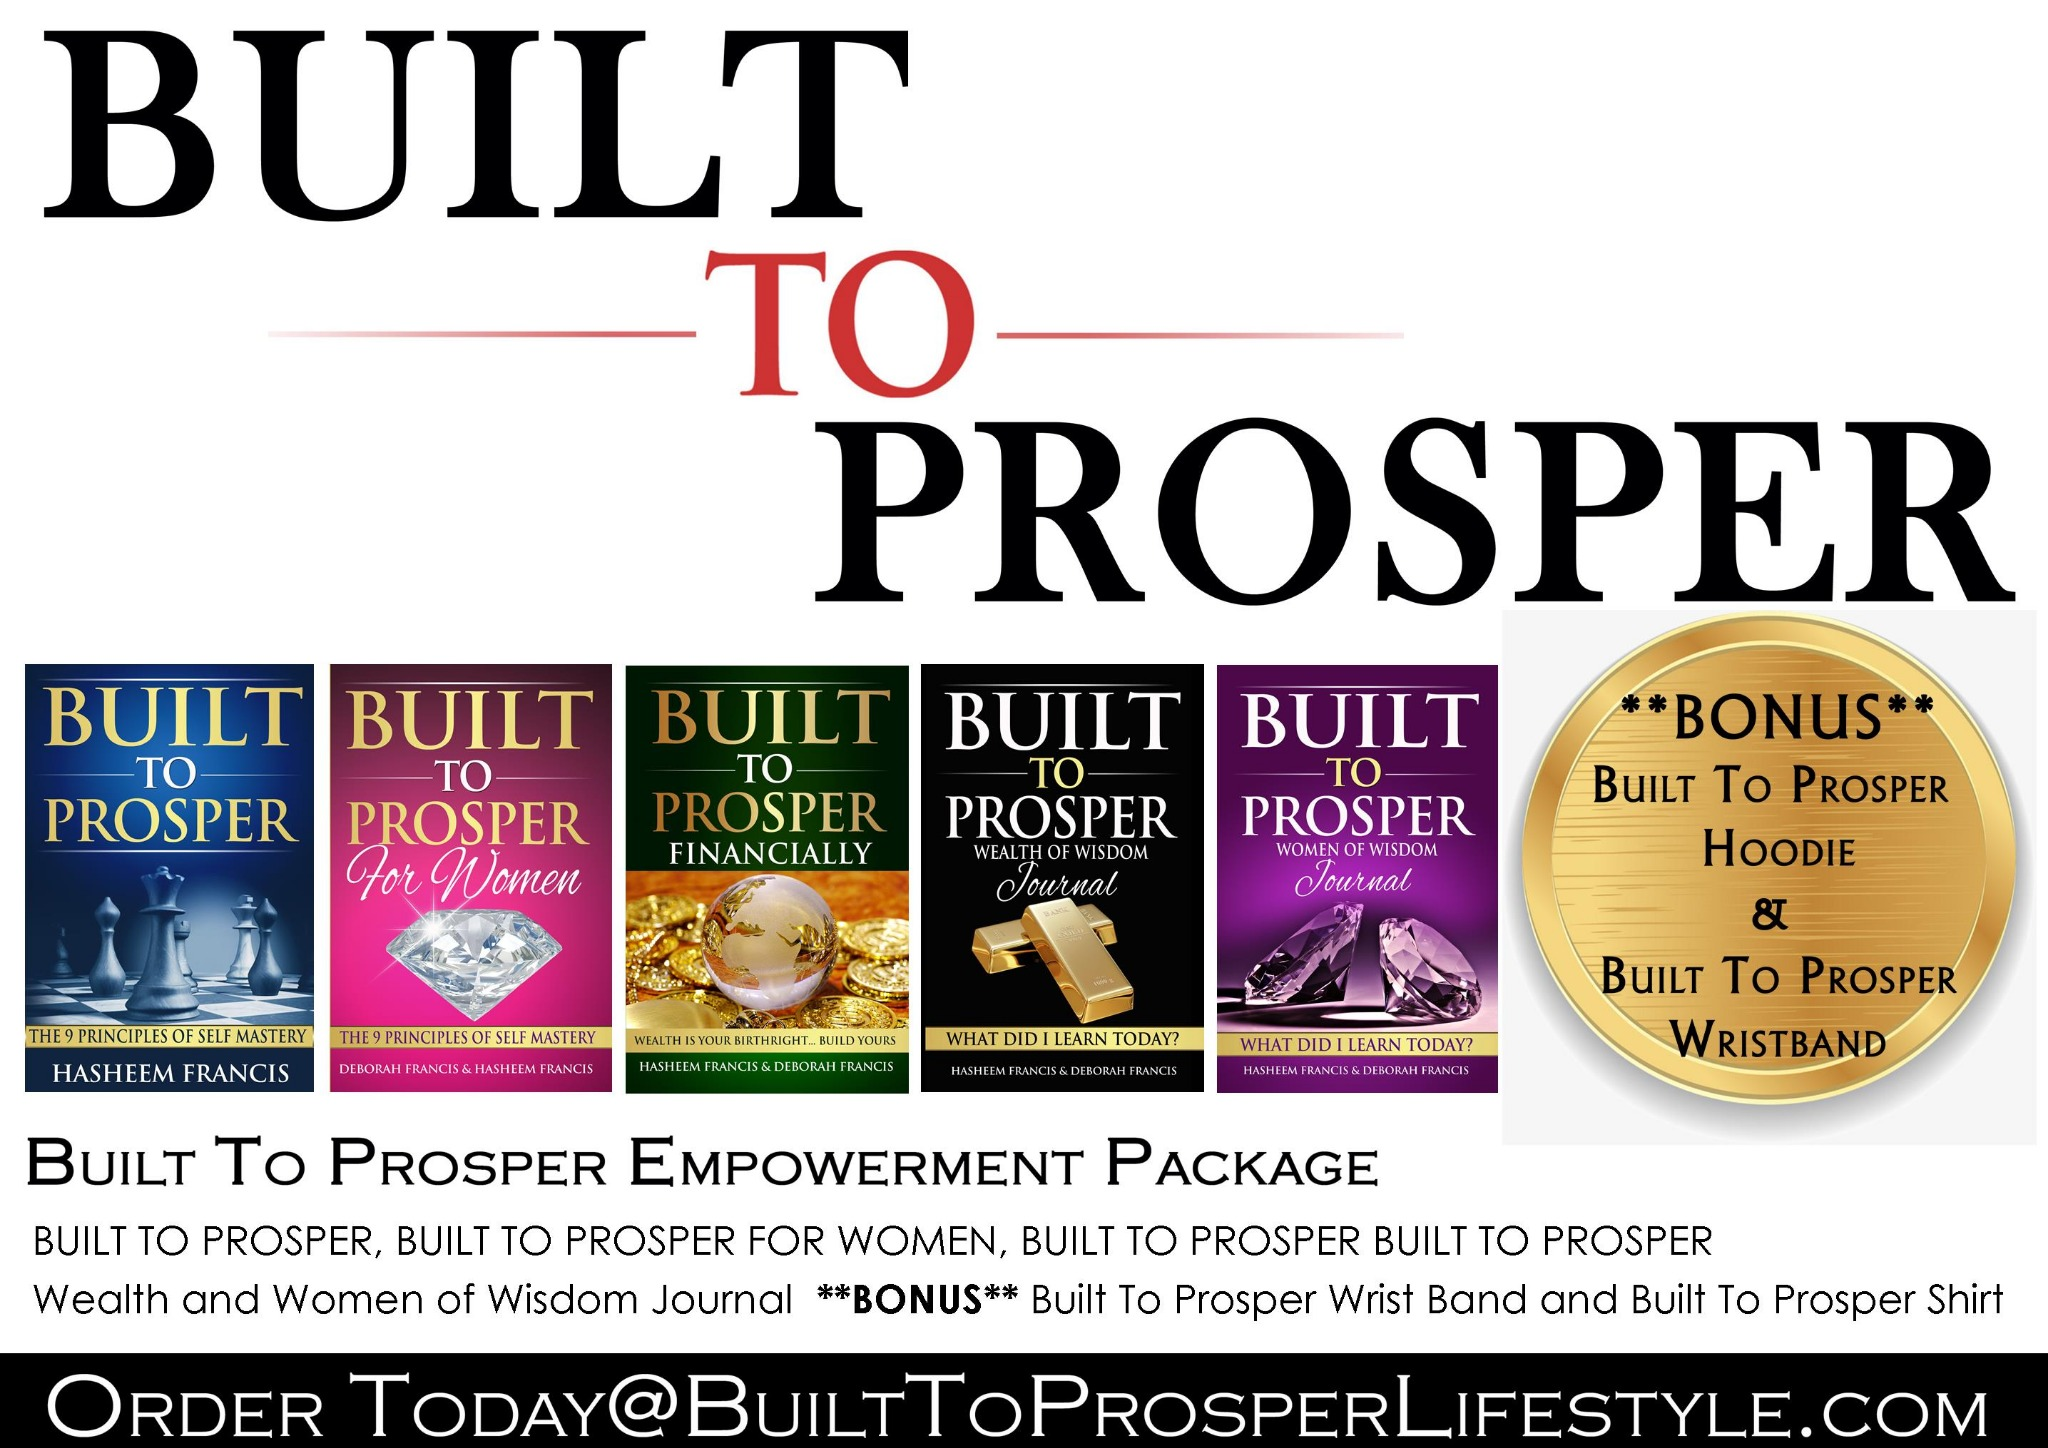 Built To Prosper Empowerment Program